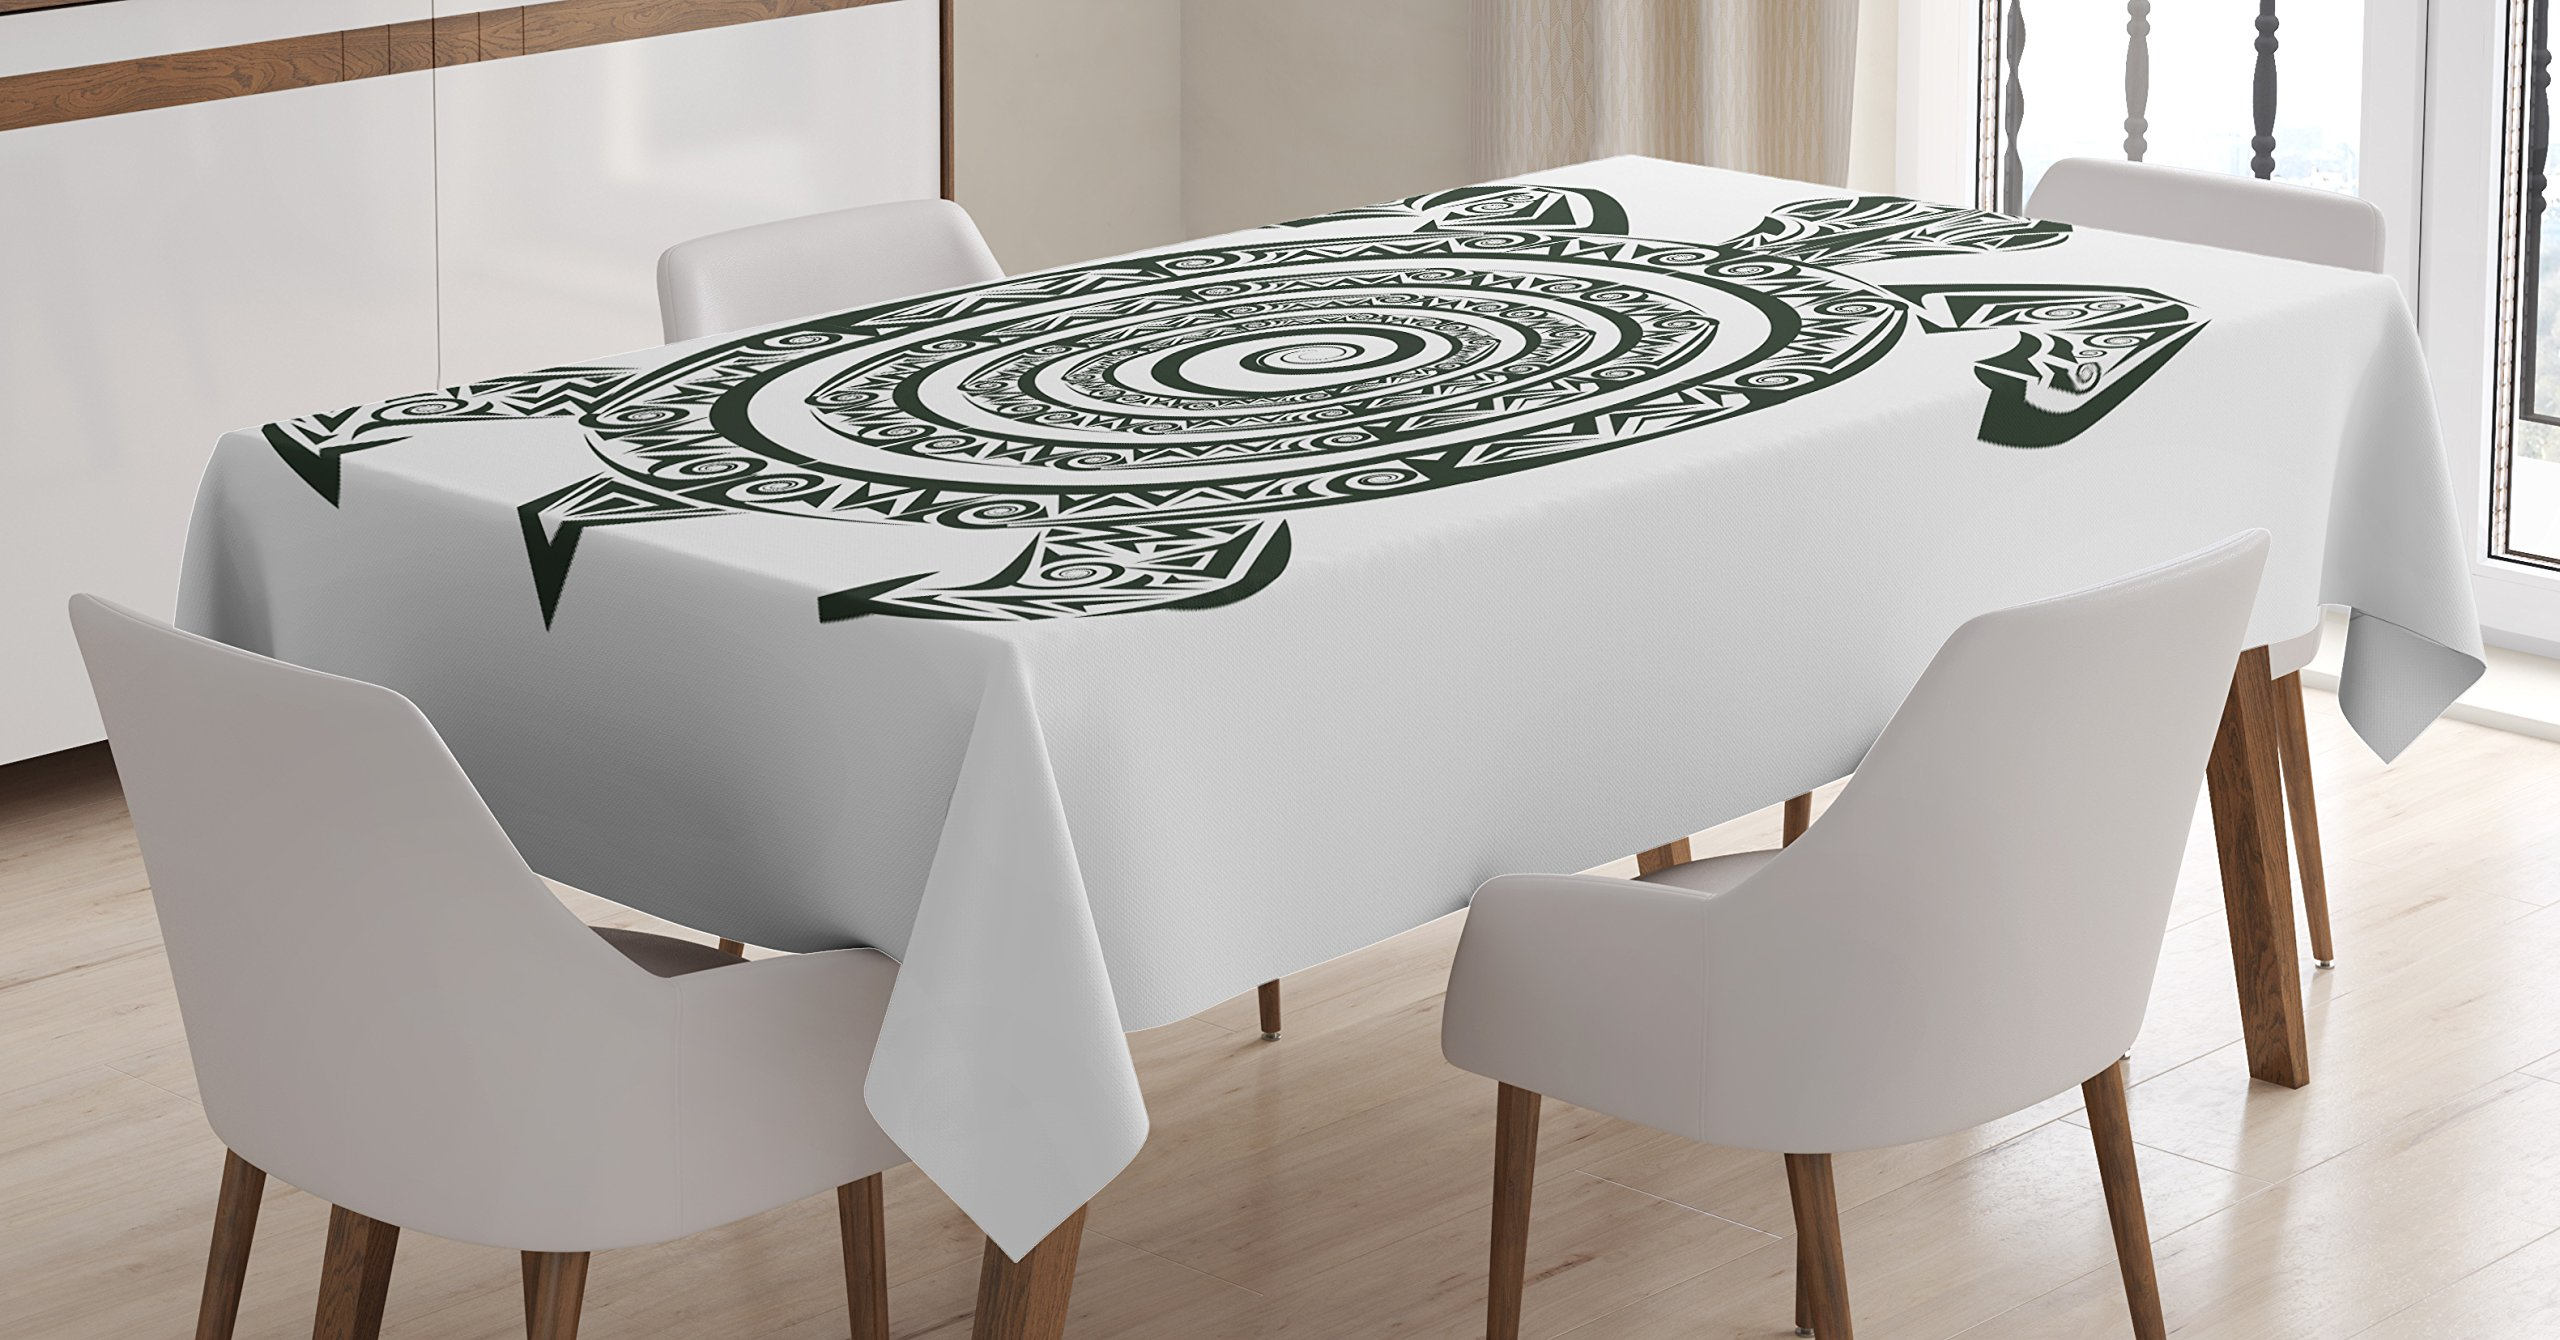 Ambesonne Turtle Tablecloth, Maori Tattoo Style Figure of Sea Animal Tribal Spiral Form Ancient Tropical, Dining Room Kitchen Rectangular Table Cover, 60 W X 84 L inches, Black and White